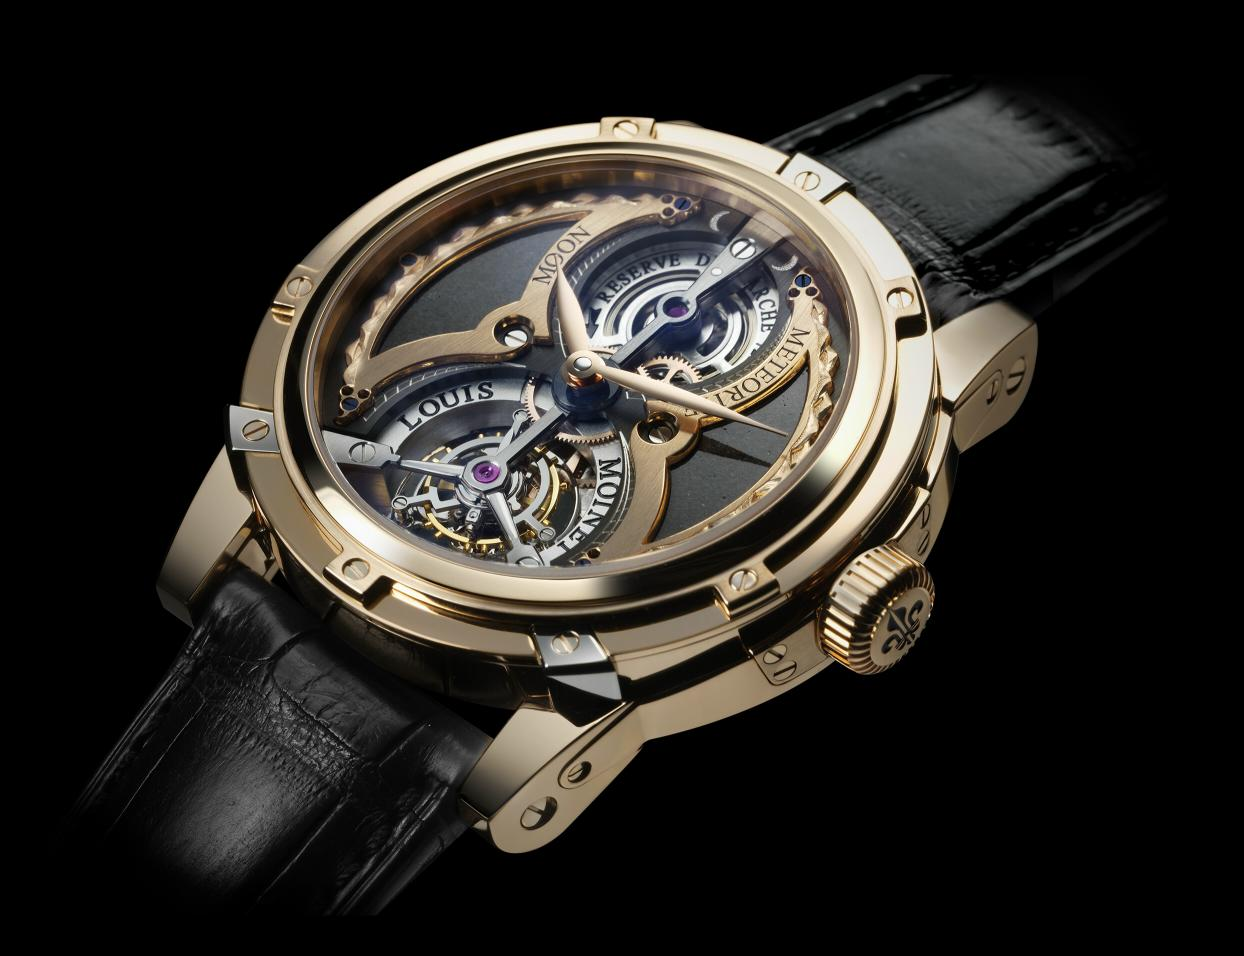 Worlds Most Expensive Watches | #3 LOUIS MOINET METEORIS WATCH $ 4.600.000